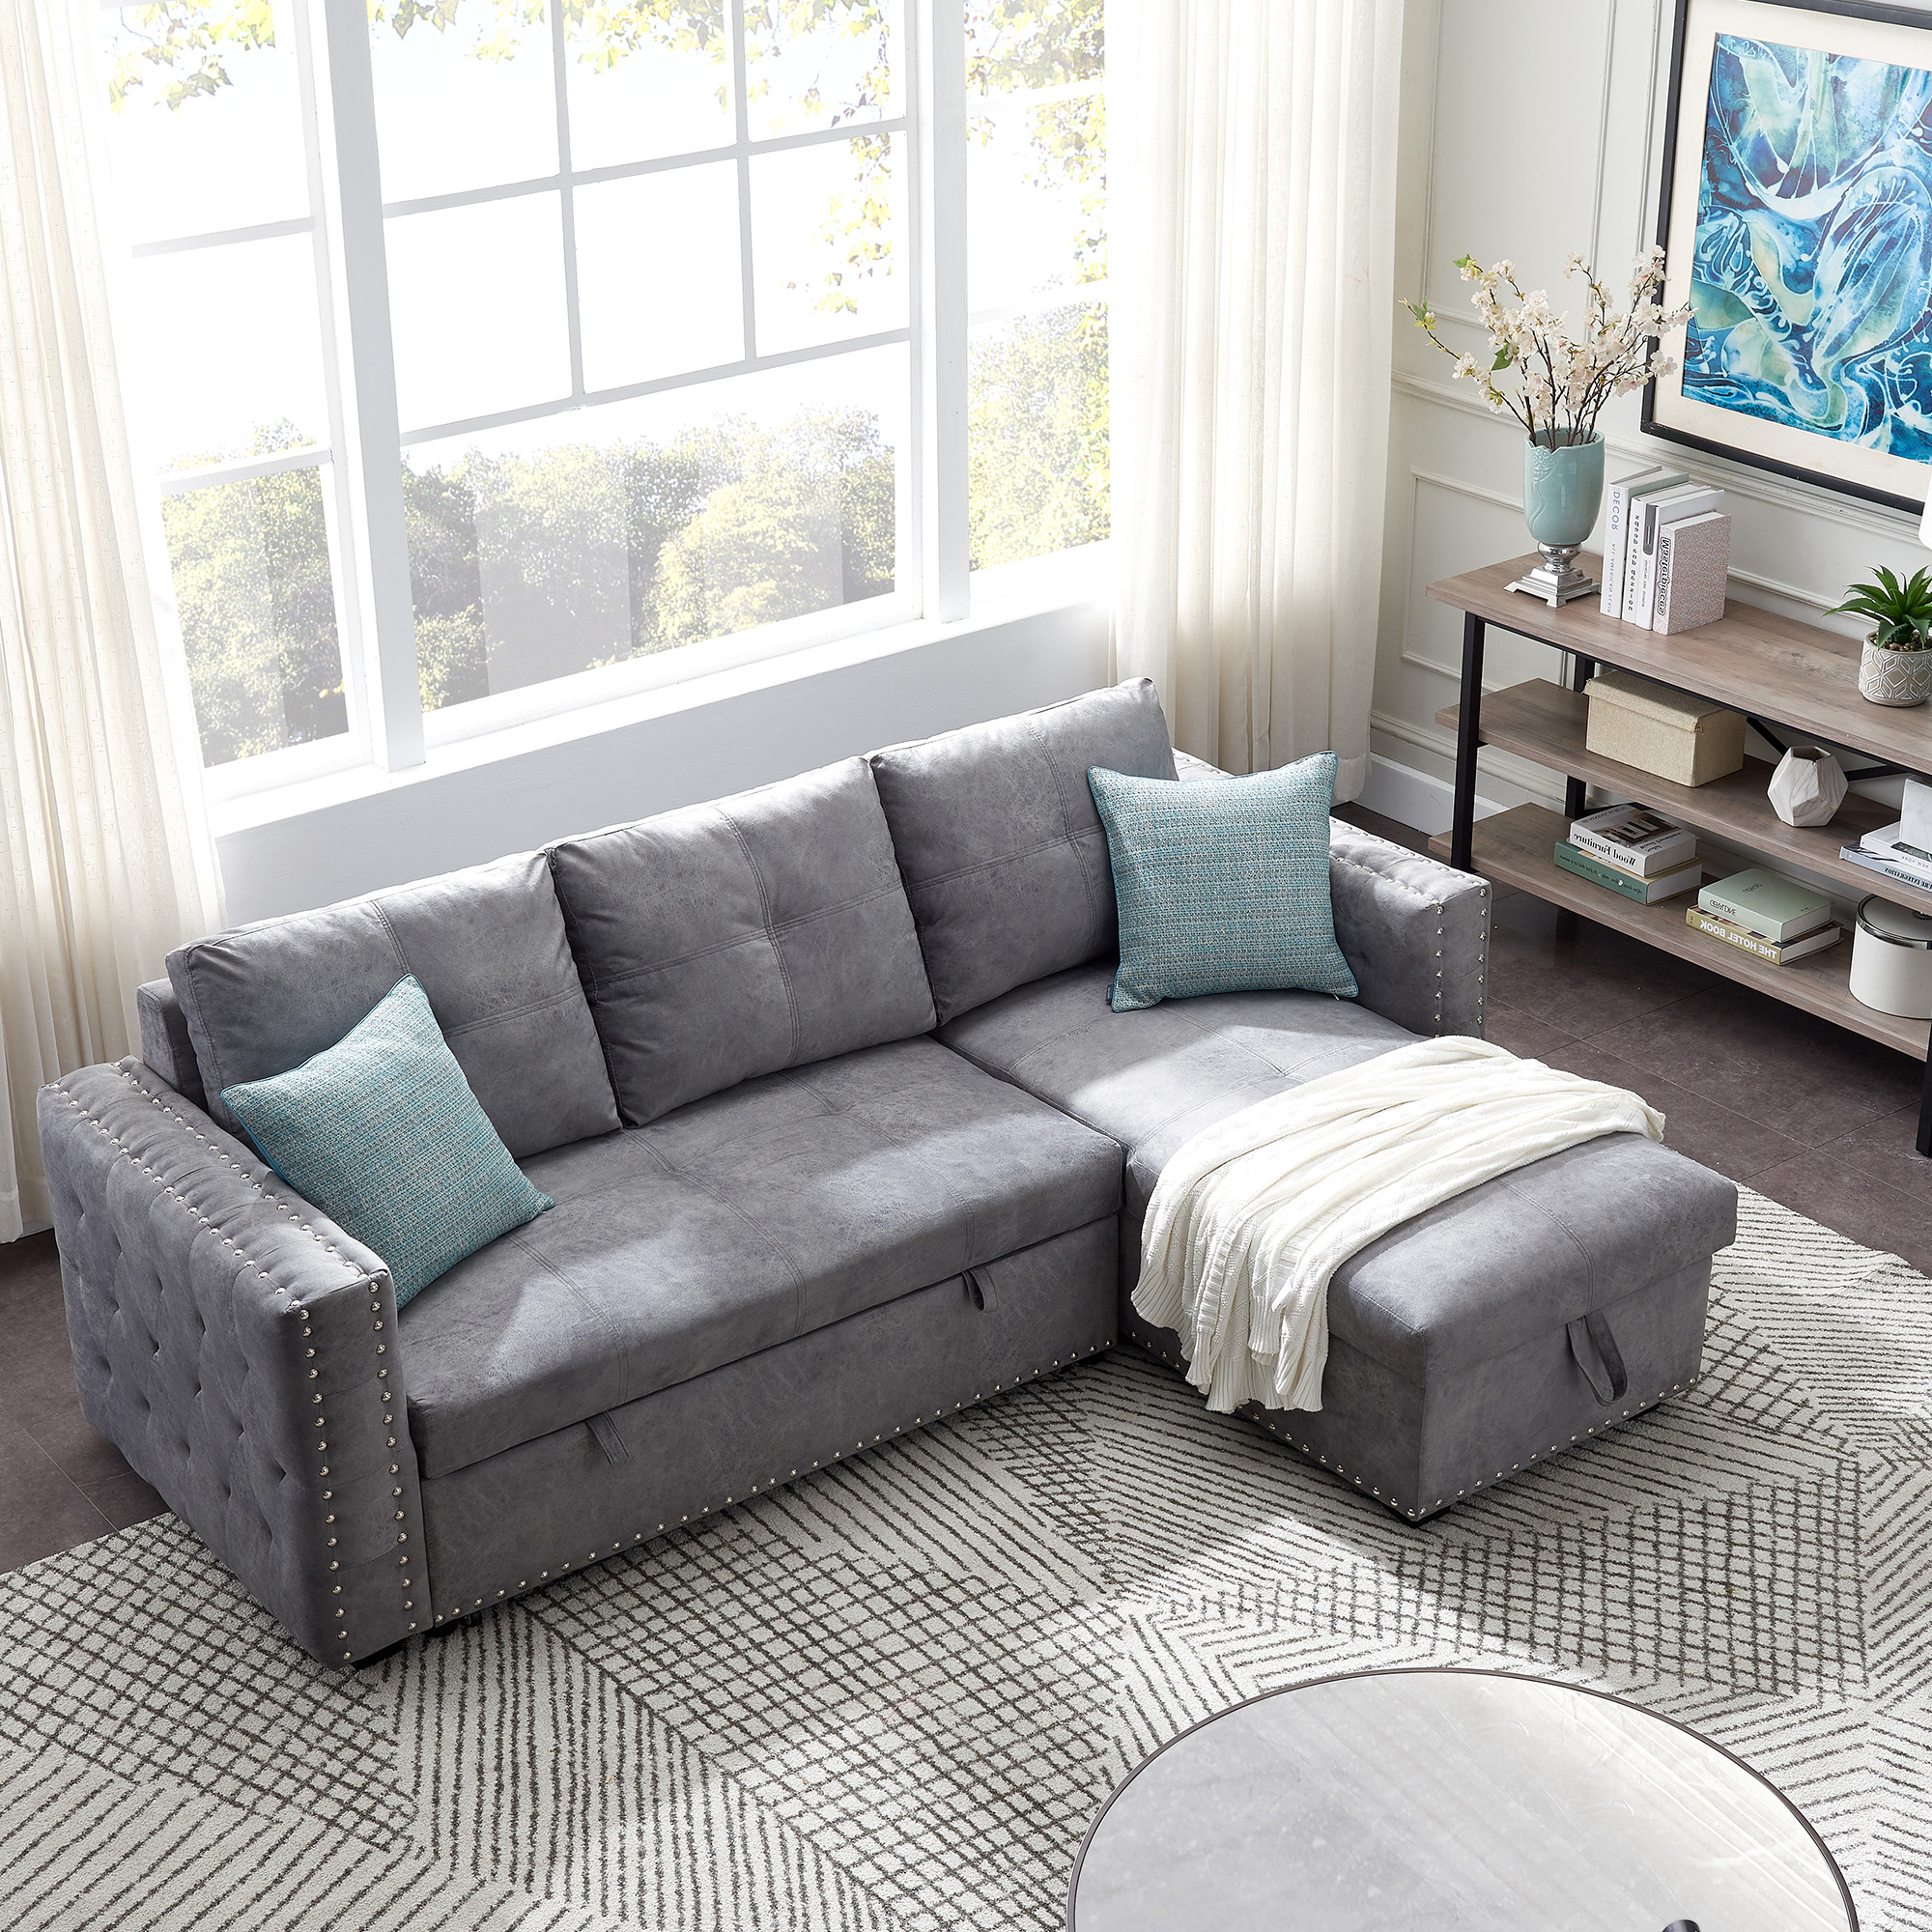 2019 Segmart Sectional Sofa, Gray Fabric – Walmart With Regard To Copenhagen Reversible Small Space Sectional Sofas With Storage (View 6 of 20)